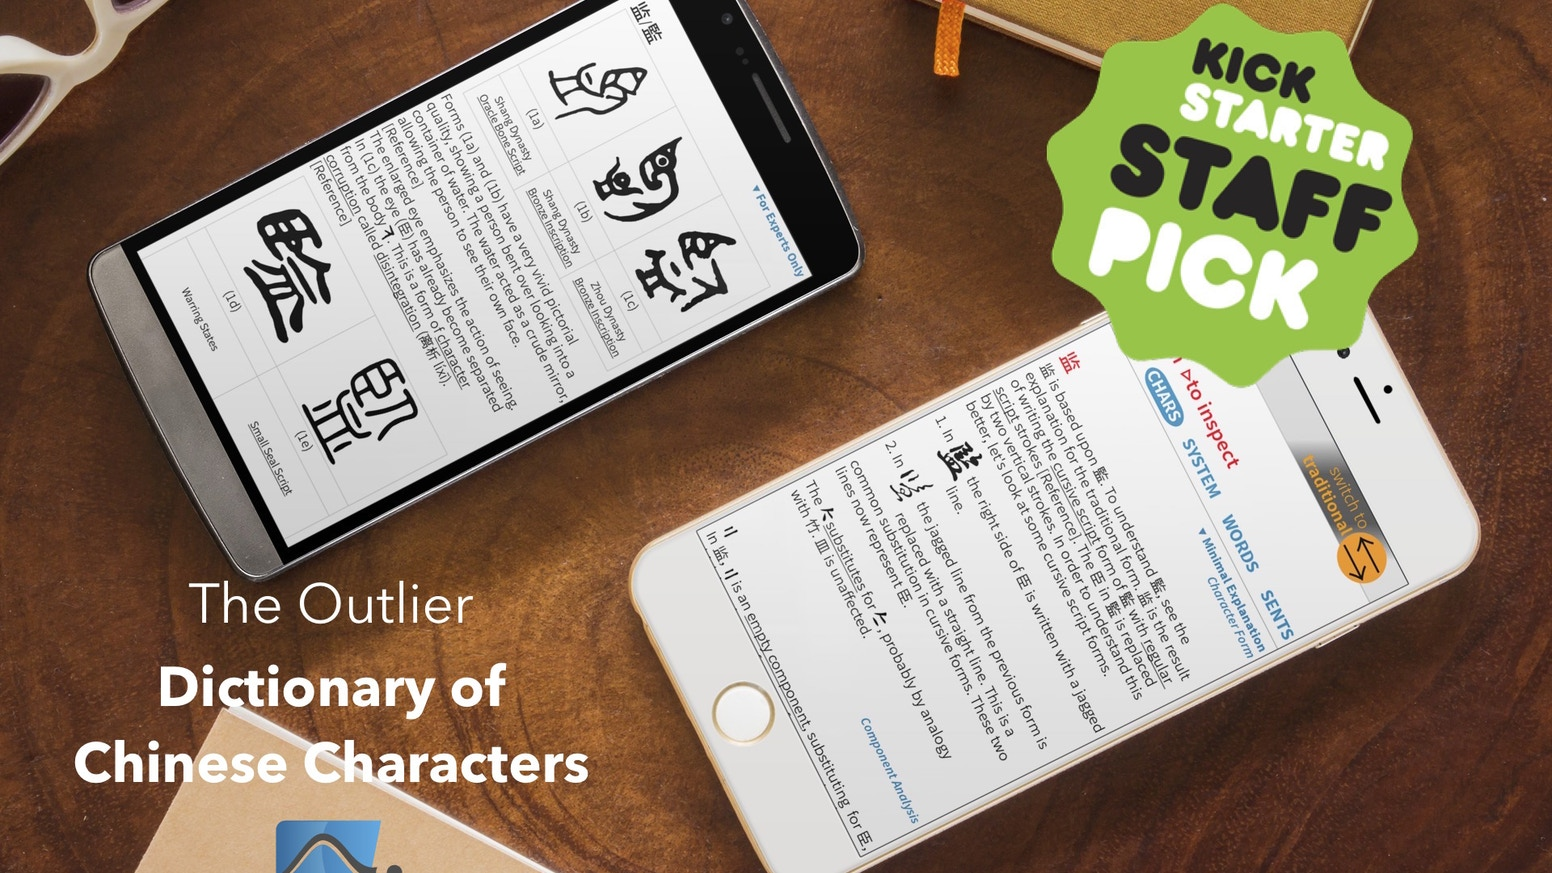 Learn characters more efficiently with this revolutionary, easy-to-use dictionary. Discover how Chinese characters actually work!